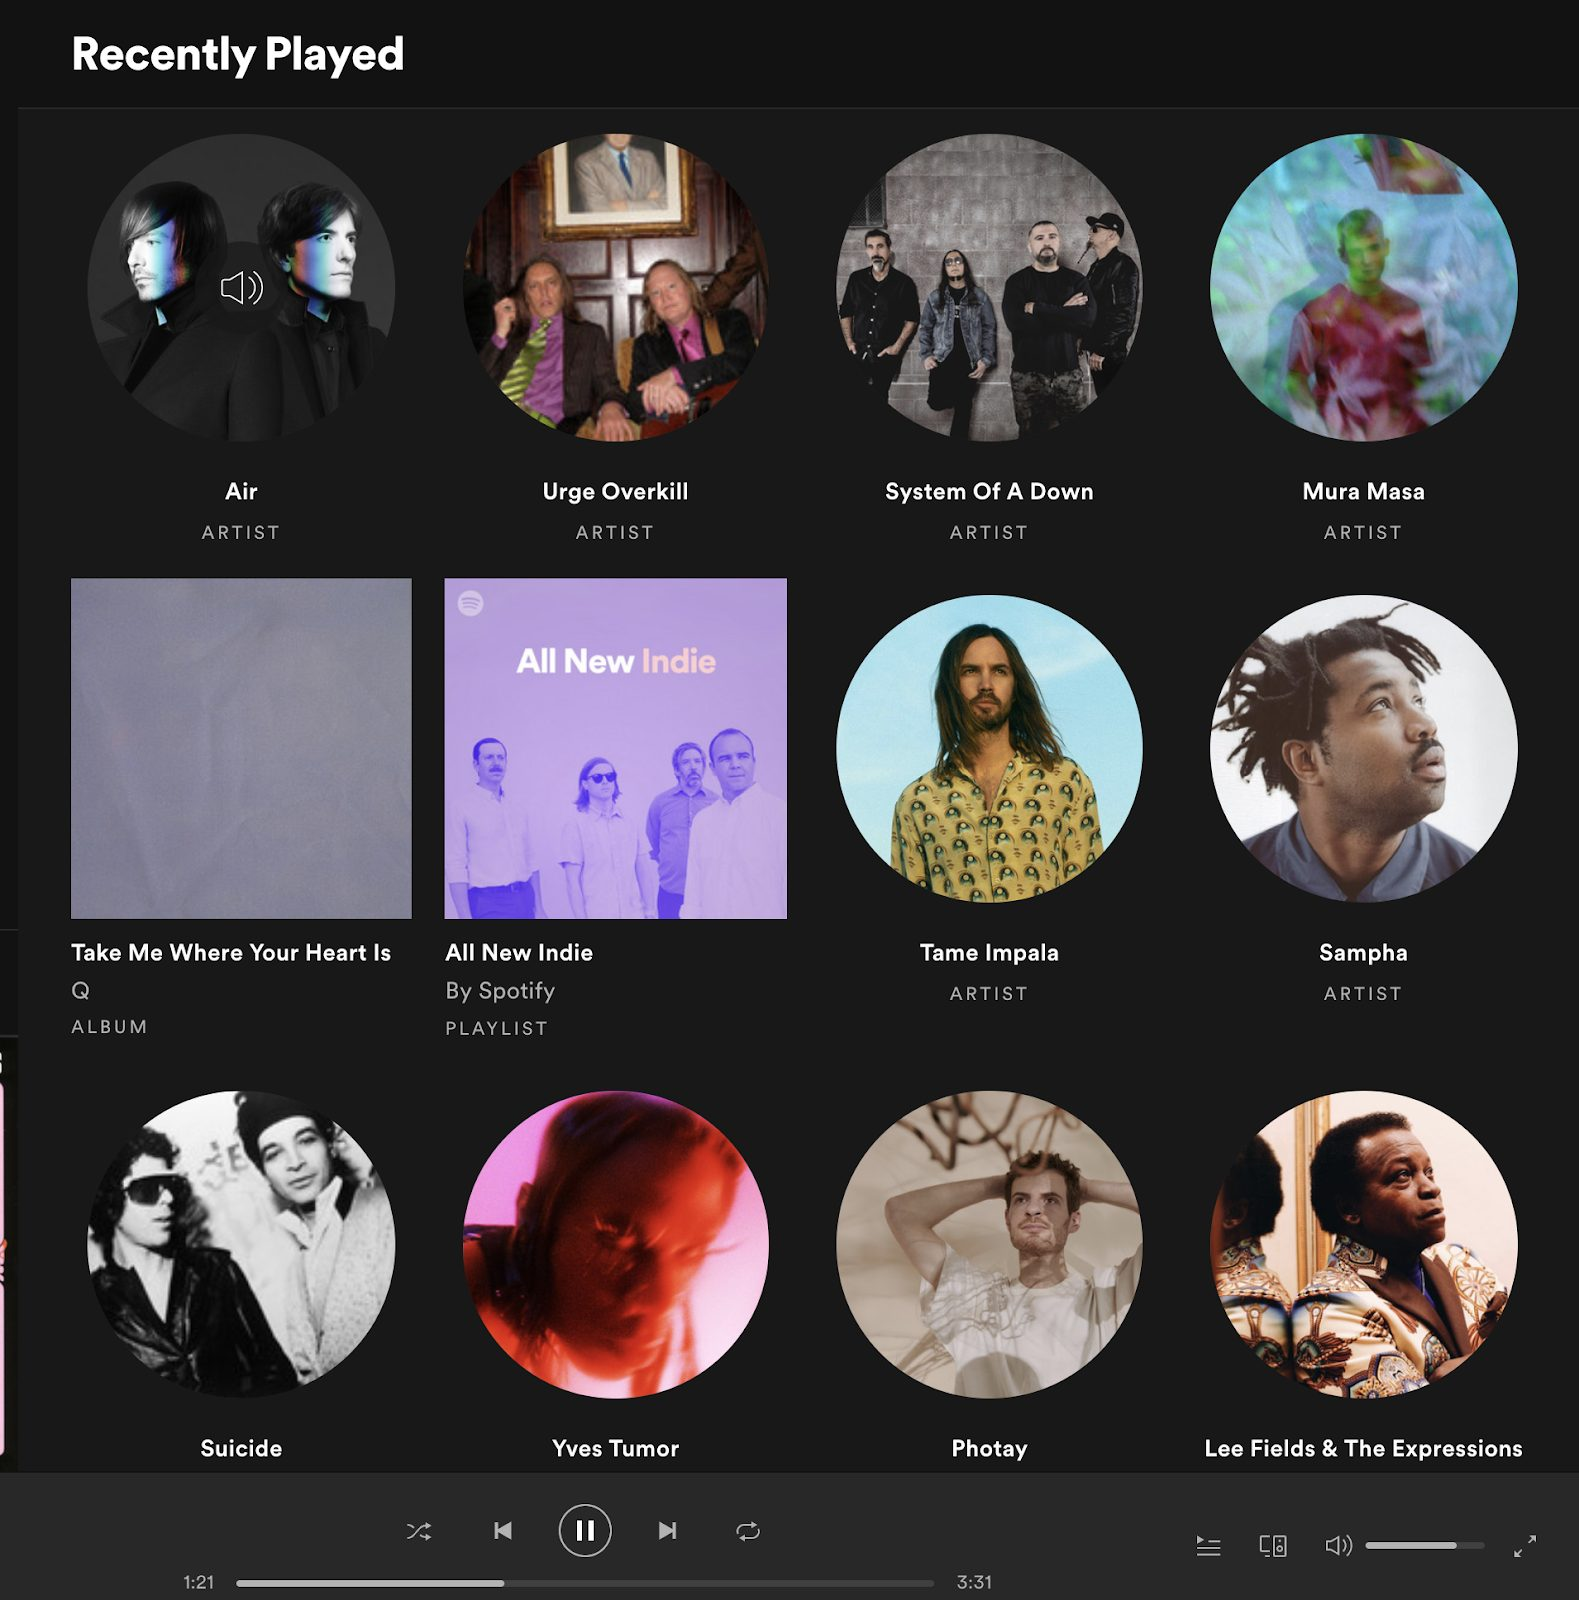 Foreign Air's recently played music on Spotify